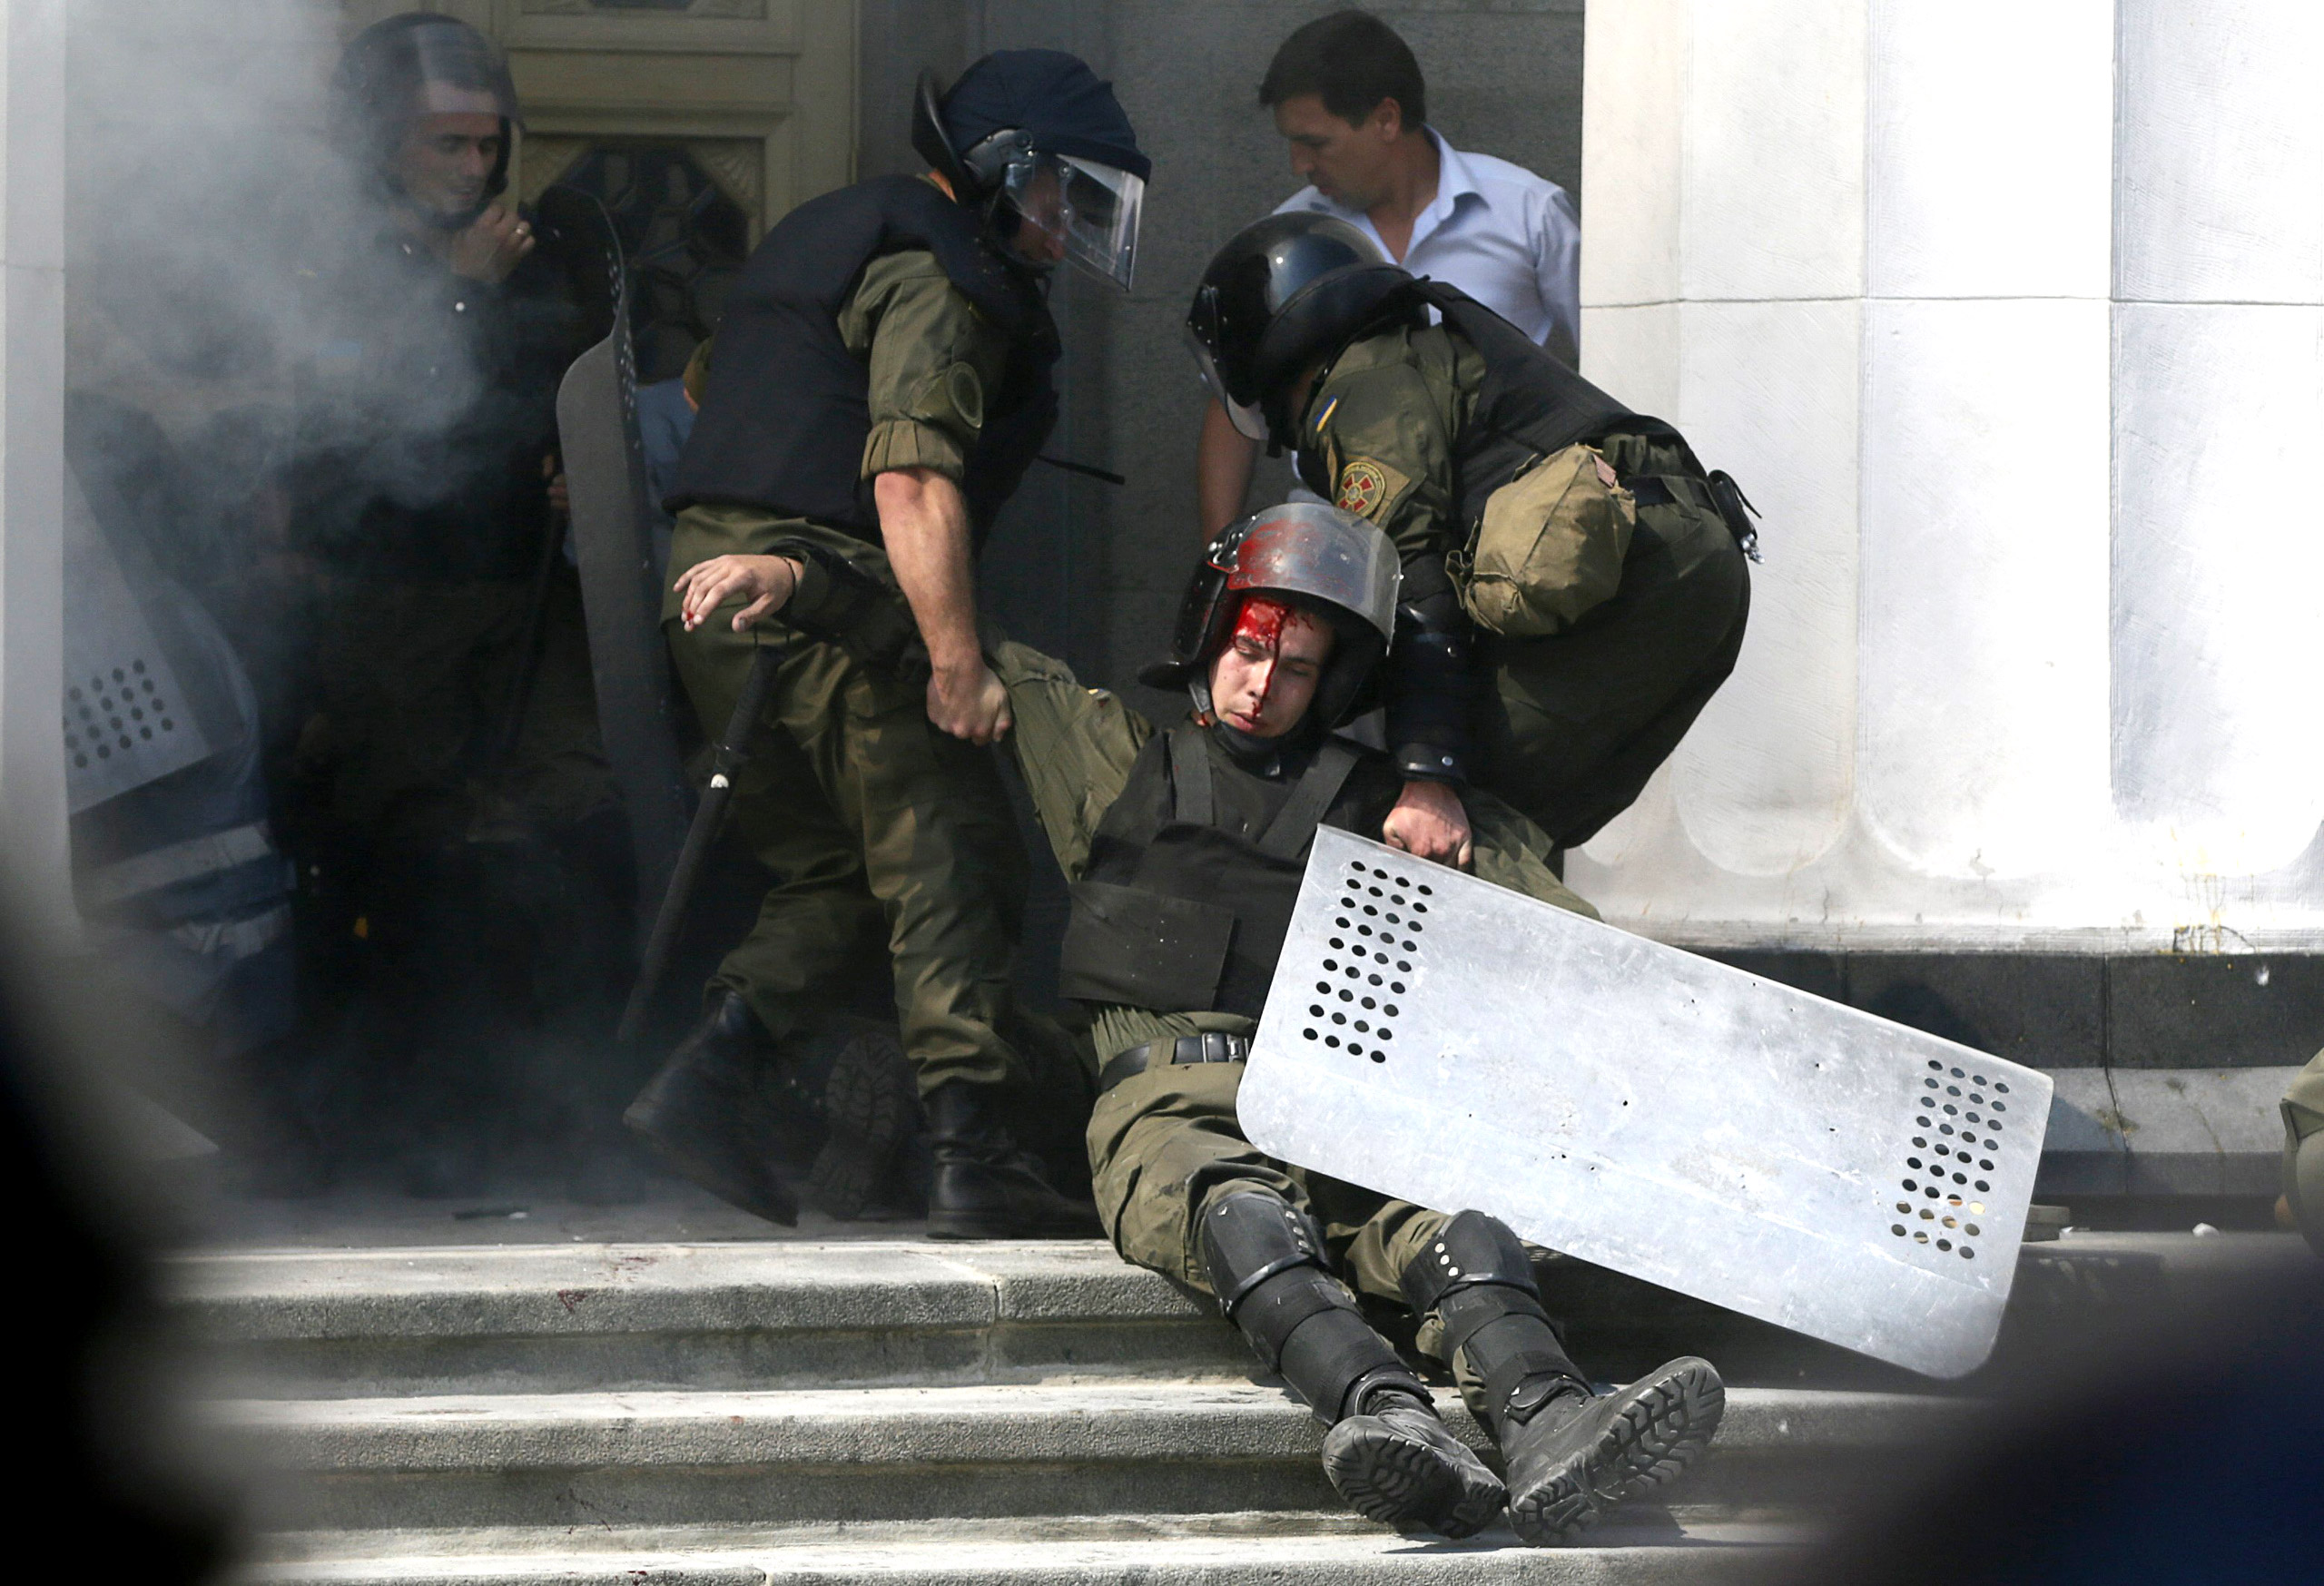 An injured national guard officer is carried away by colleagues outside the parliament building in Kiev, Ukraine, on Aug. 31, 2015.